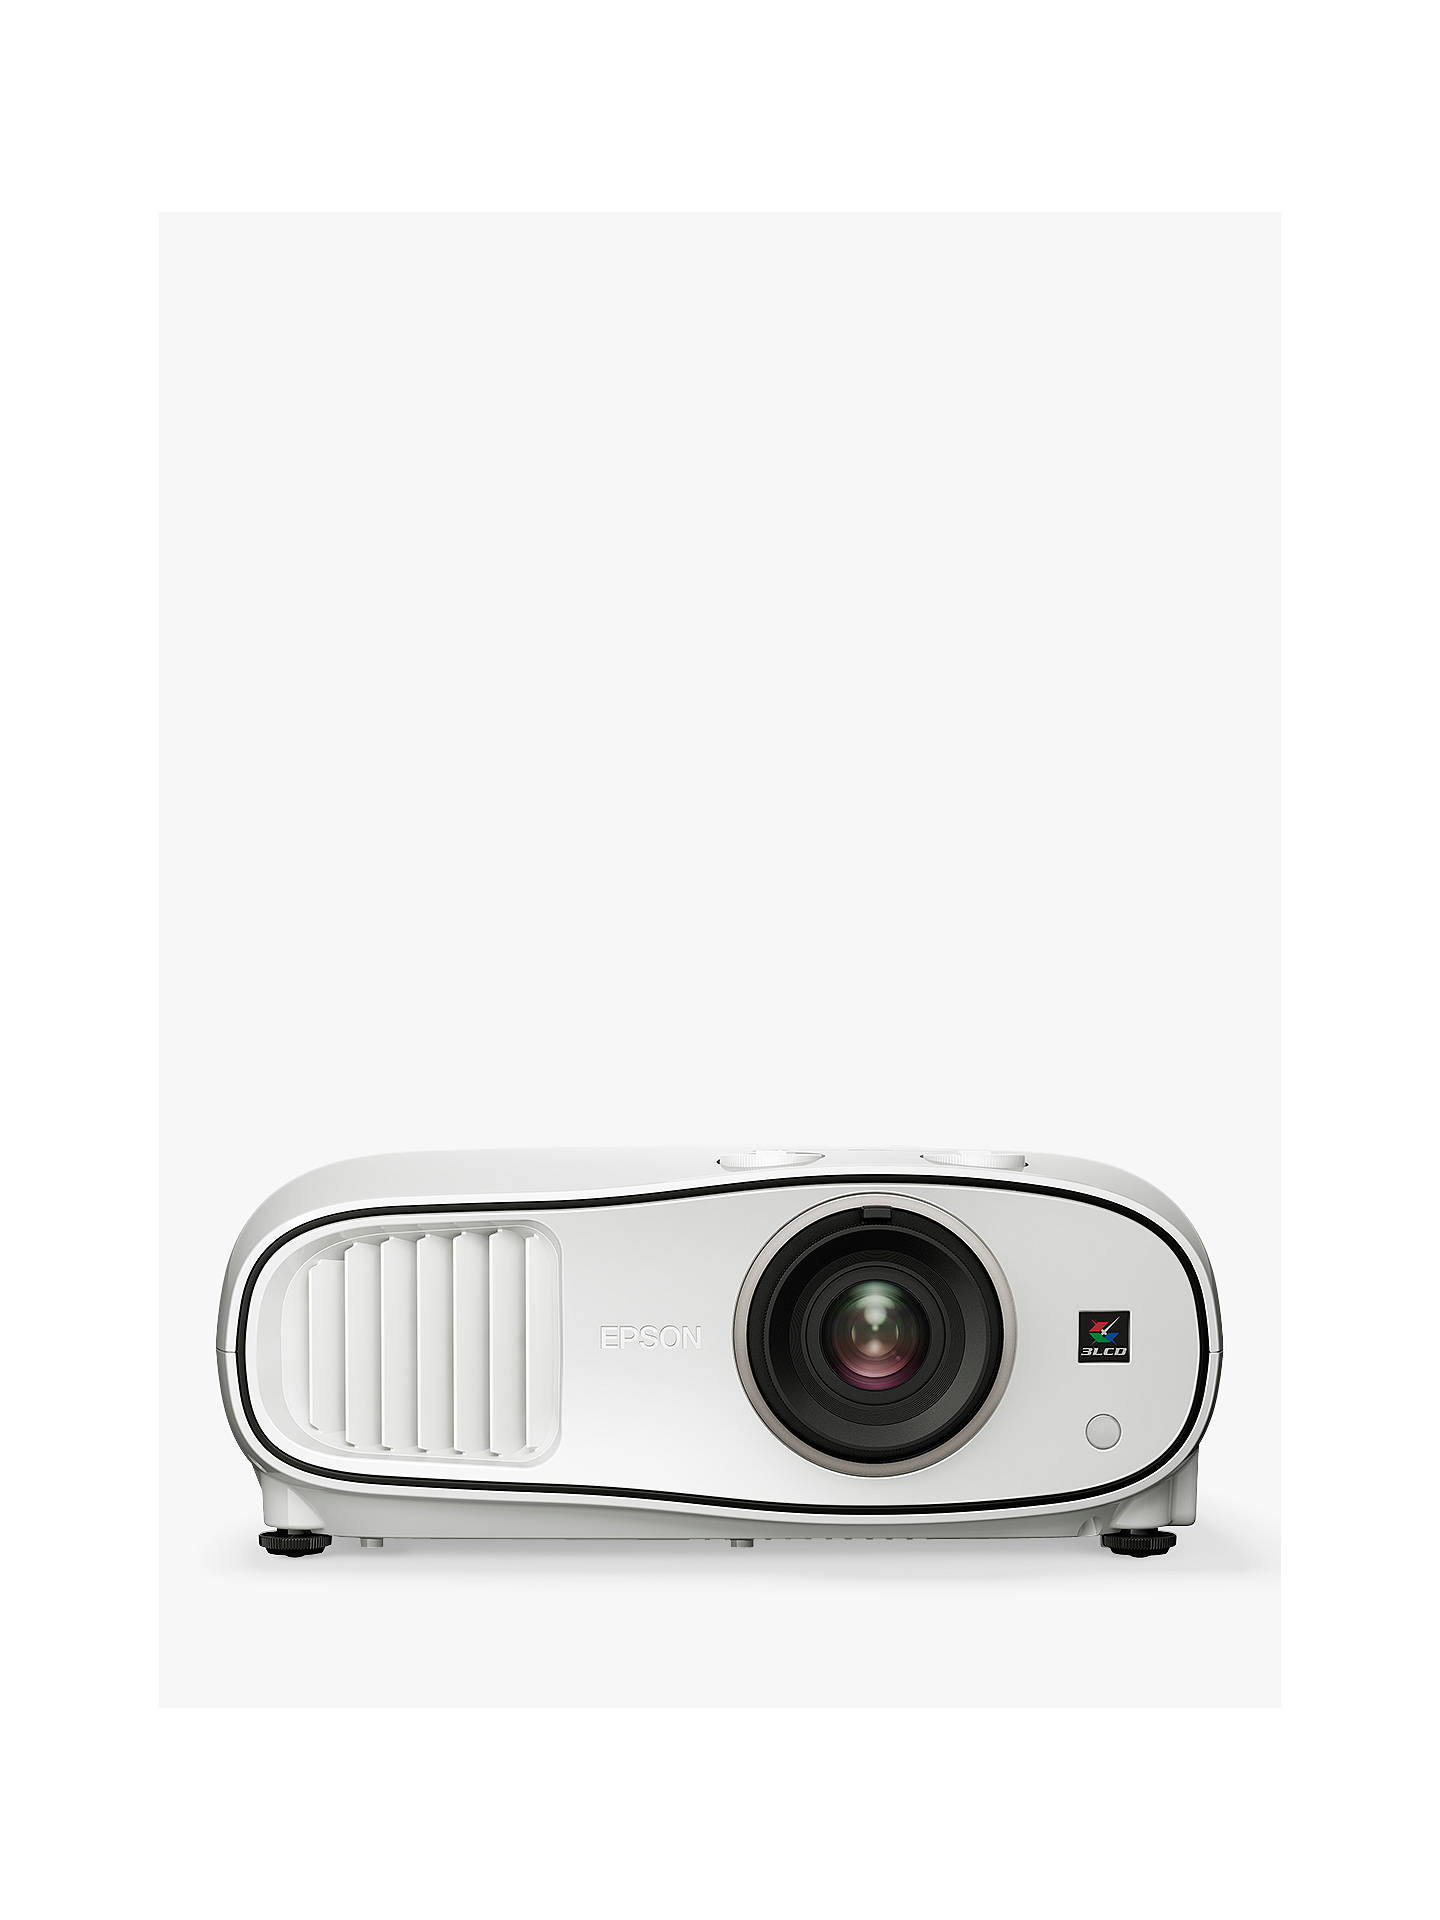 Epson Eh Tw6700 Full Hd 1080p 3 D Projector, 3000 Lumens by Epson